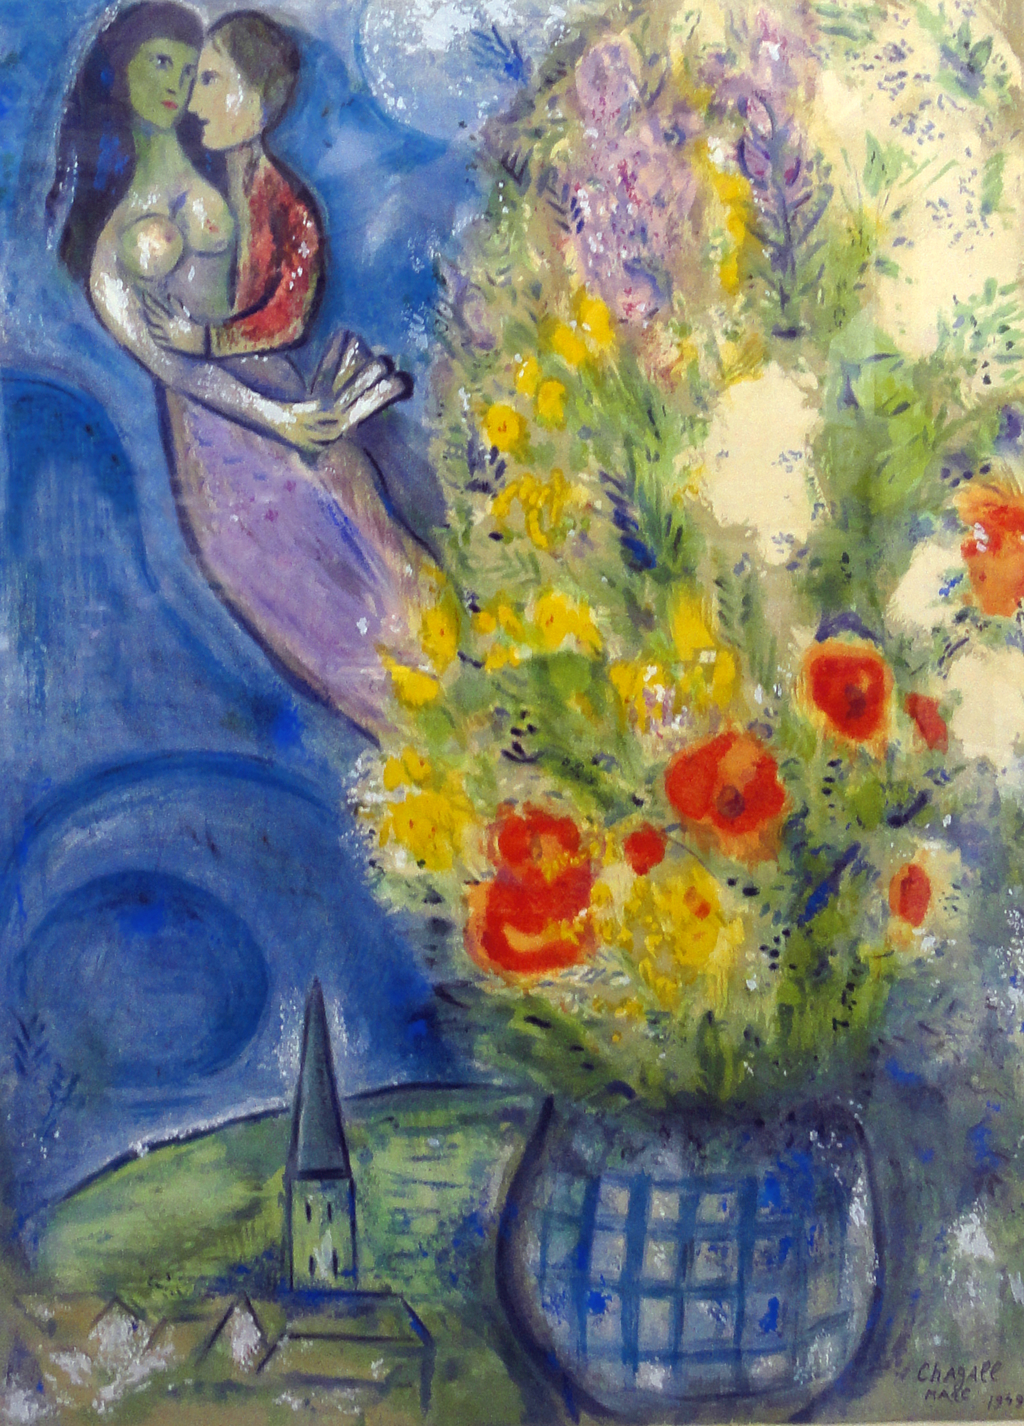 Red Poppies by Marc Chagall (1887 - 1985)